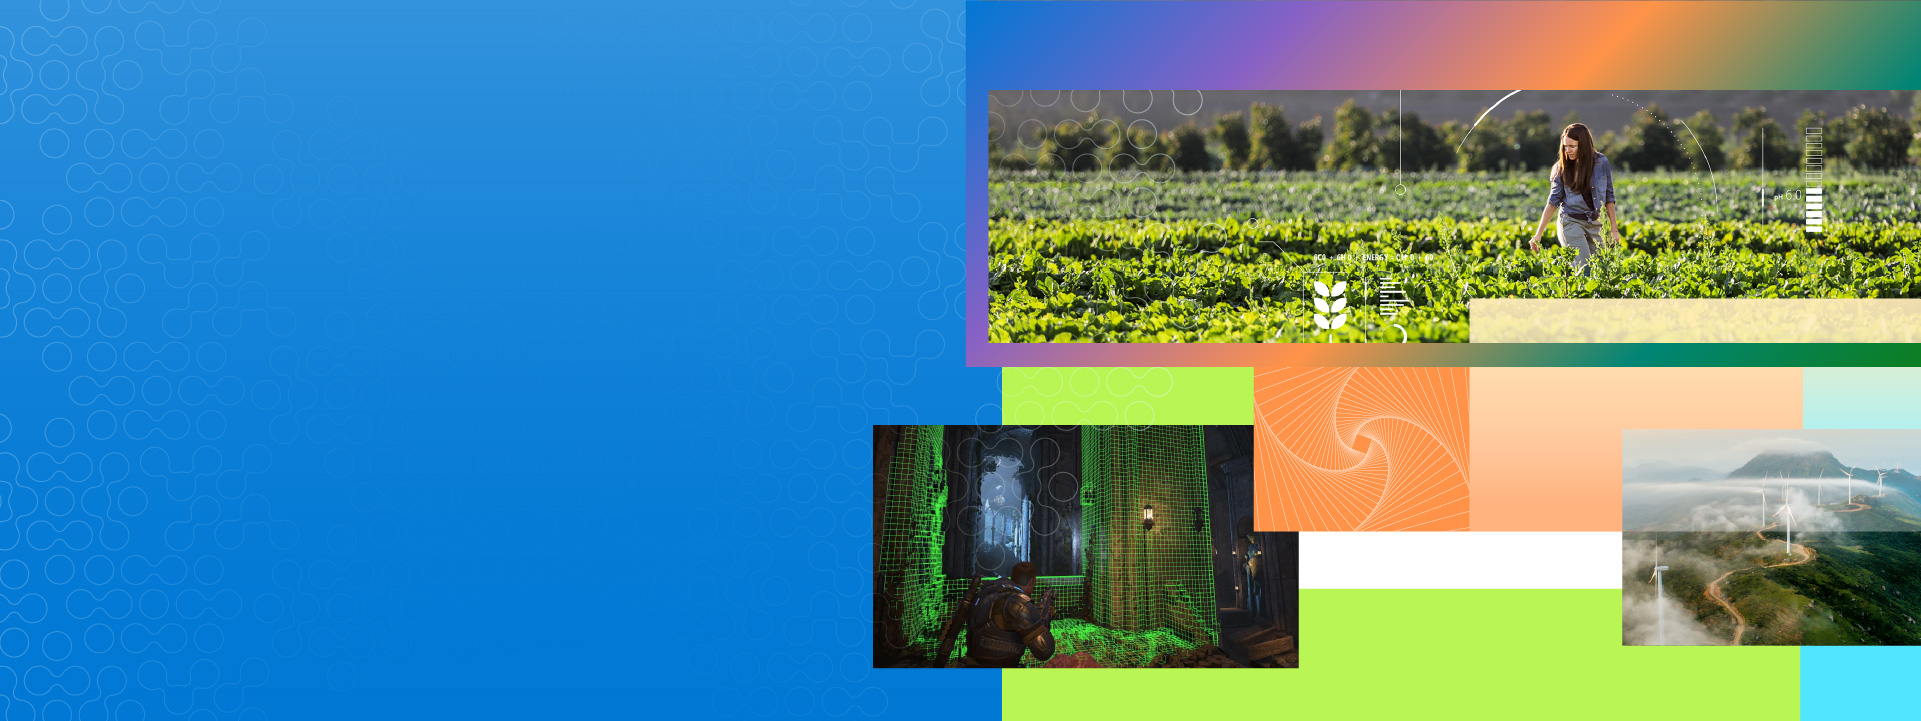 Research for Industry header: agri-food, energy, gaming image collage